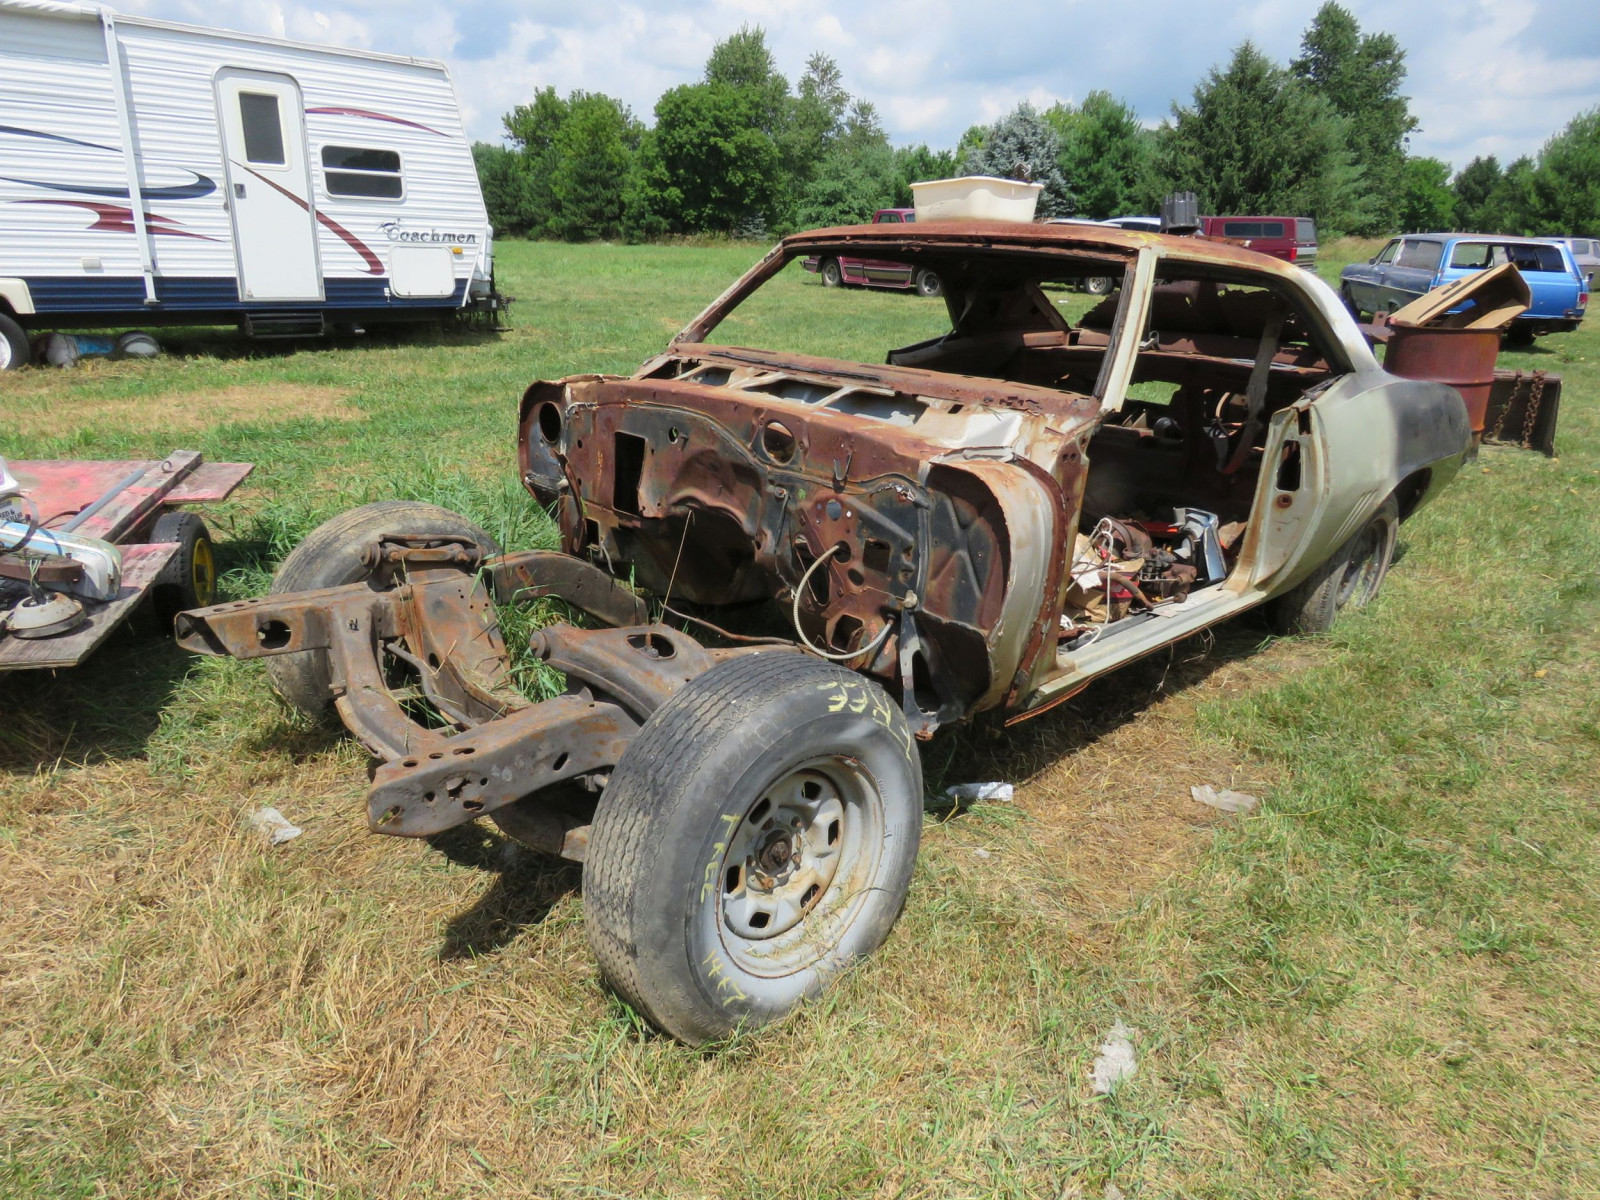 1969 Chevrolet Camaro Body for Restore - Image 1